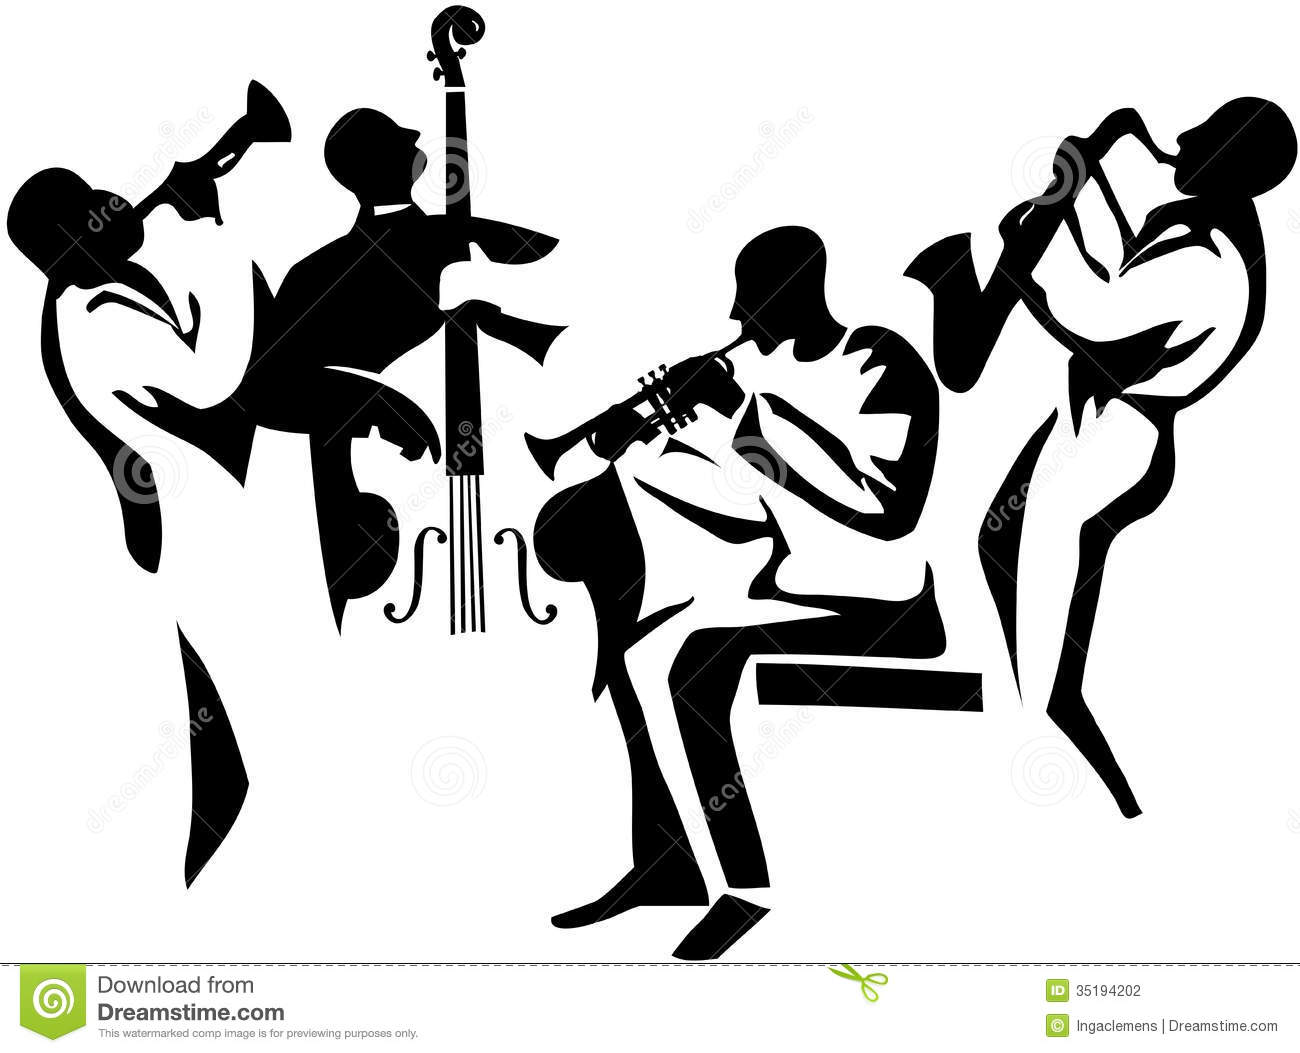 1000+ ideas about Jazz Musicians on Pinterest.